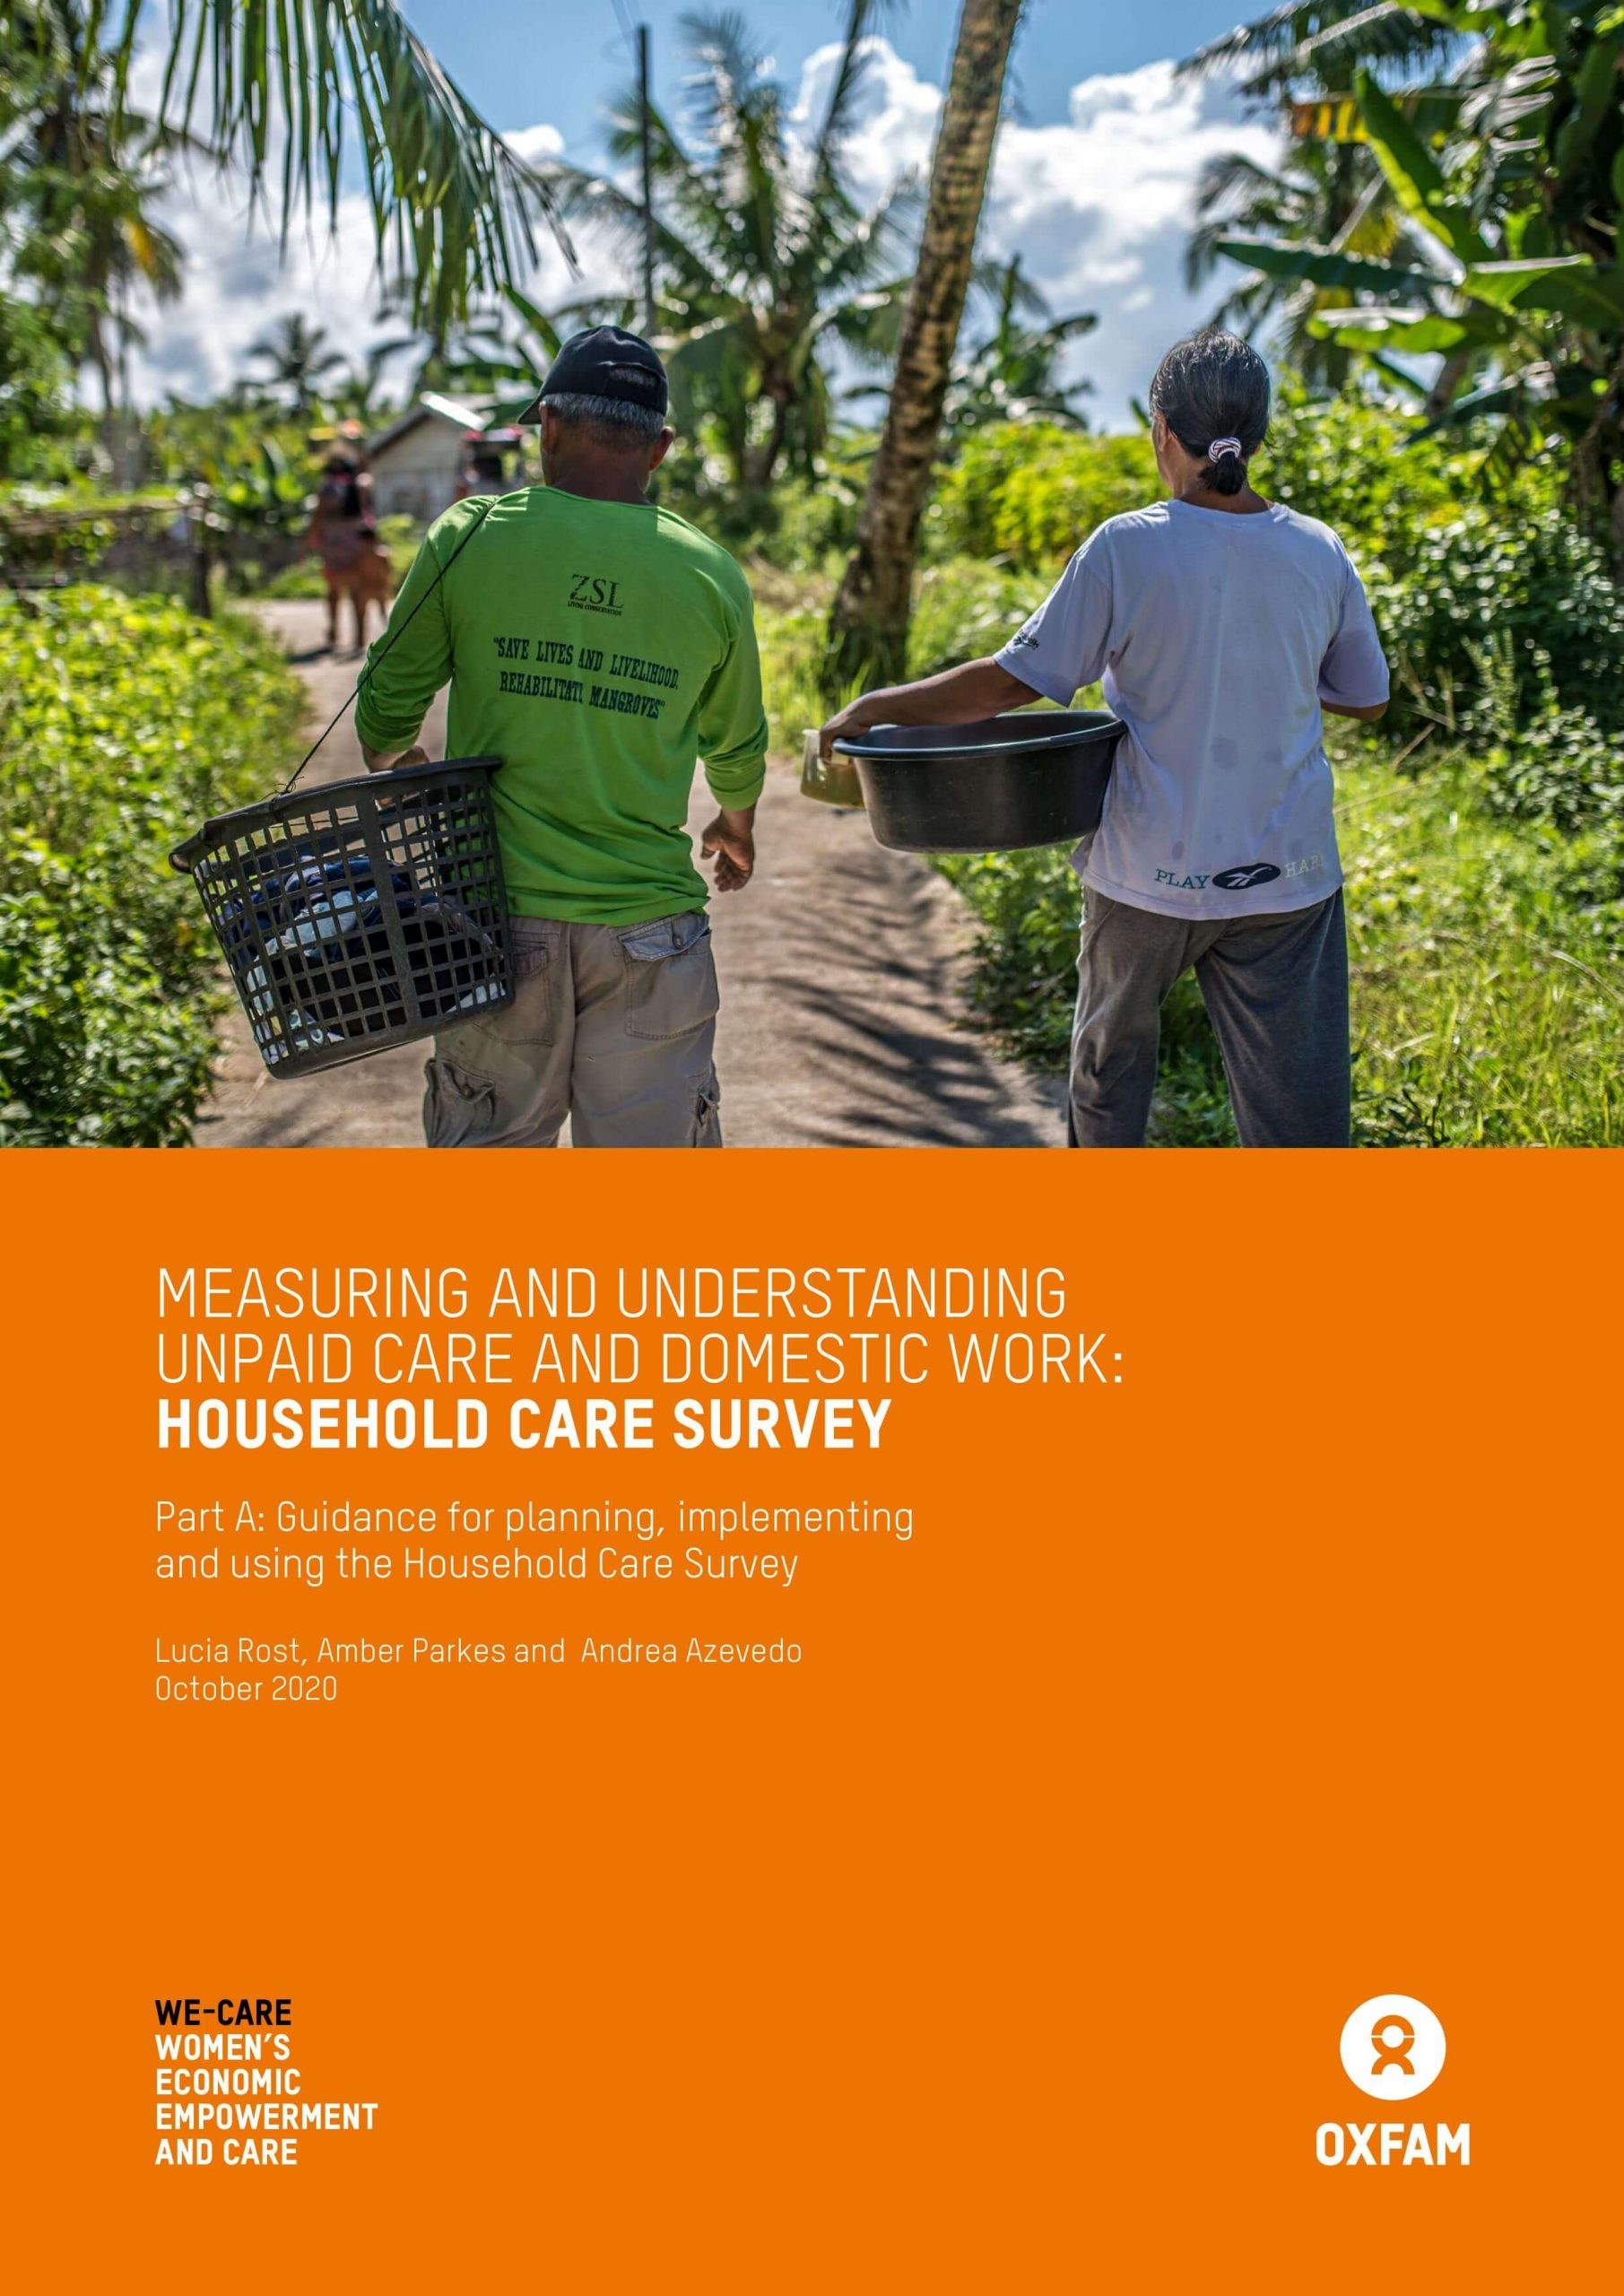 Measuring and Understanding Unpaid Care and Domestic Work